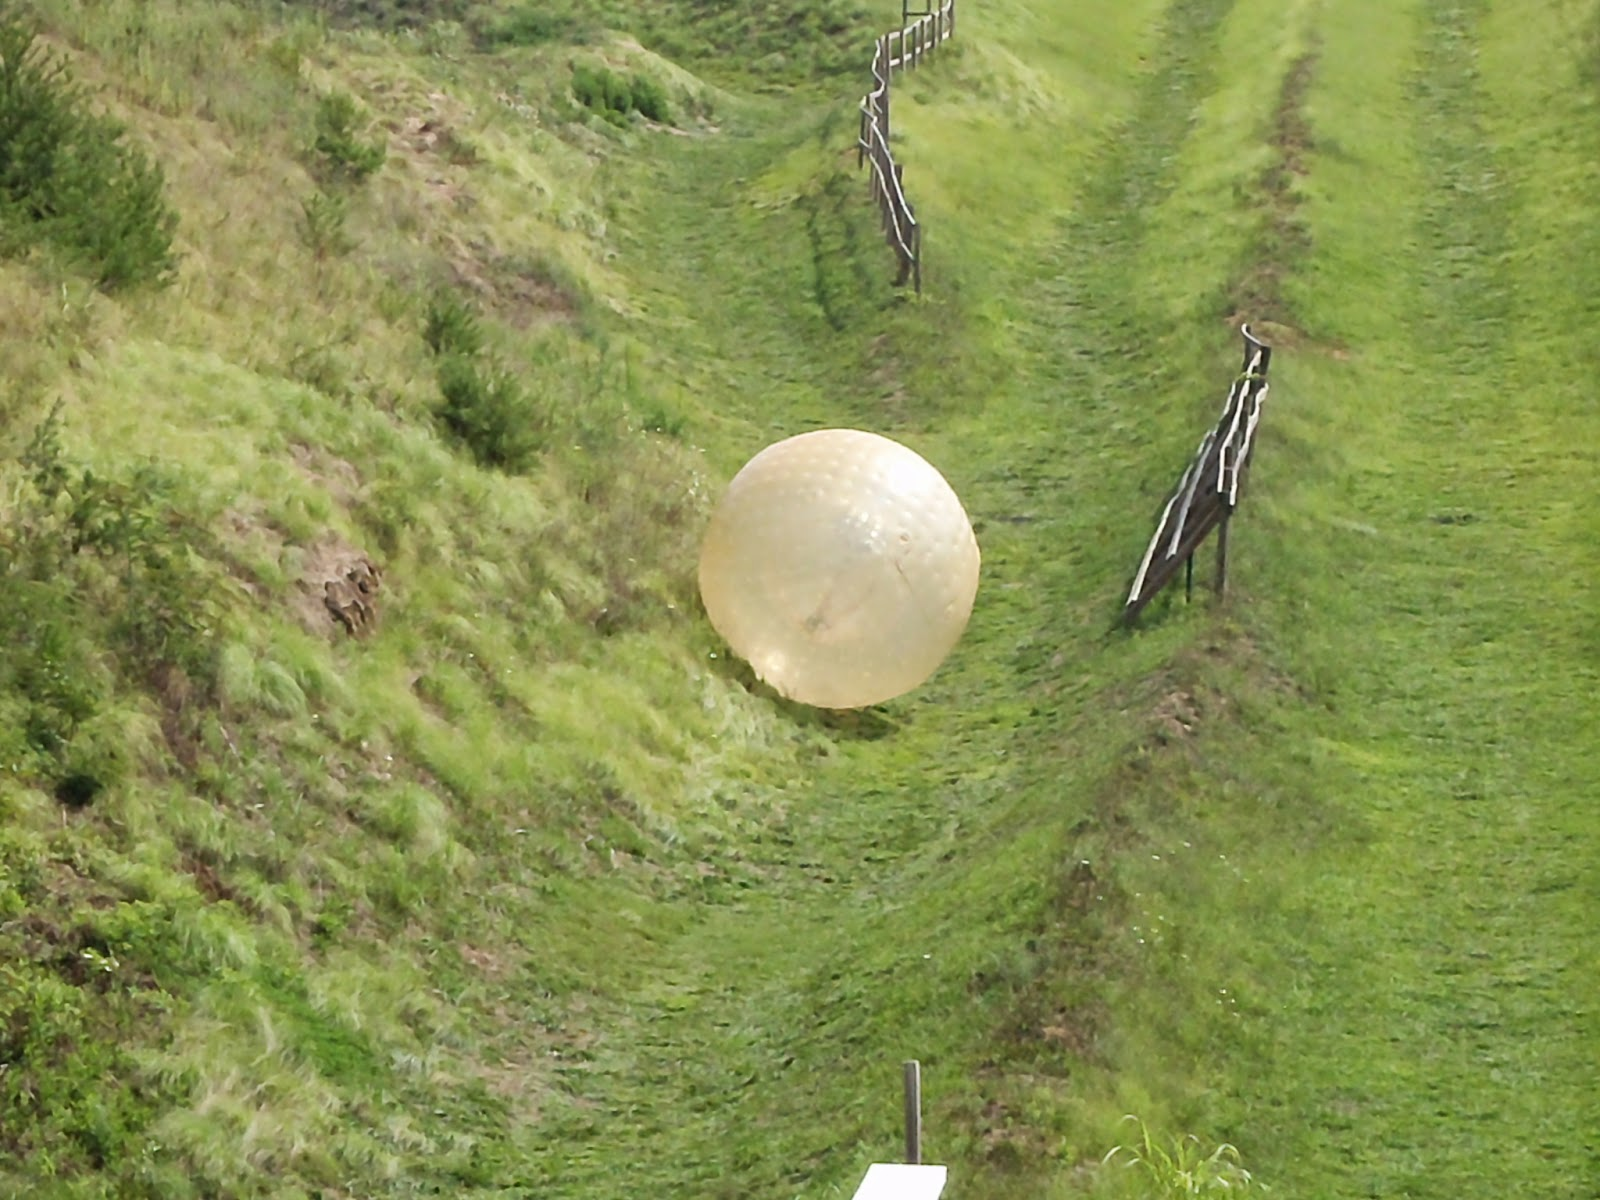 zorbing in tennessee